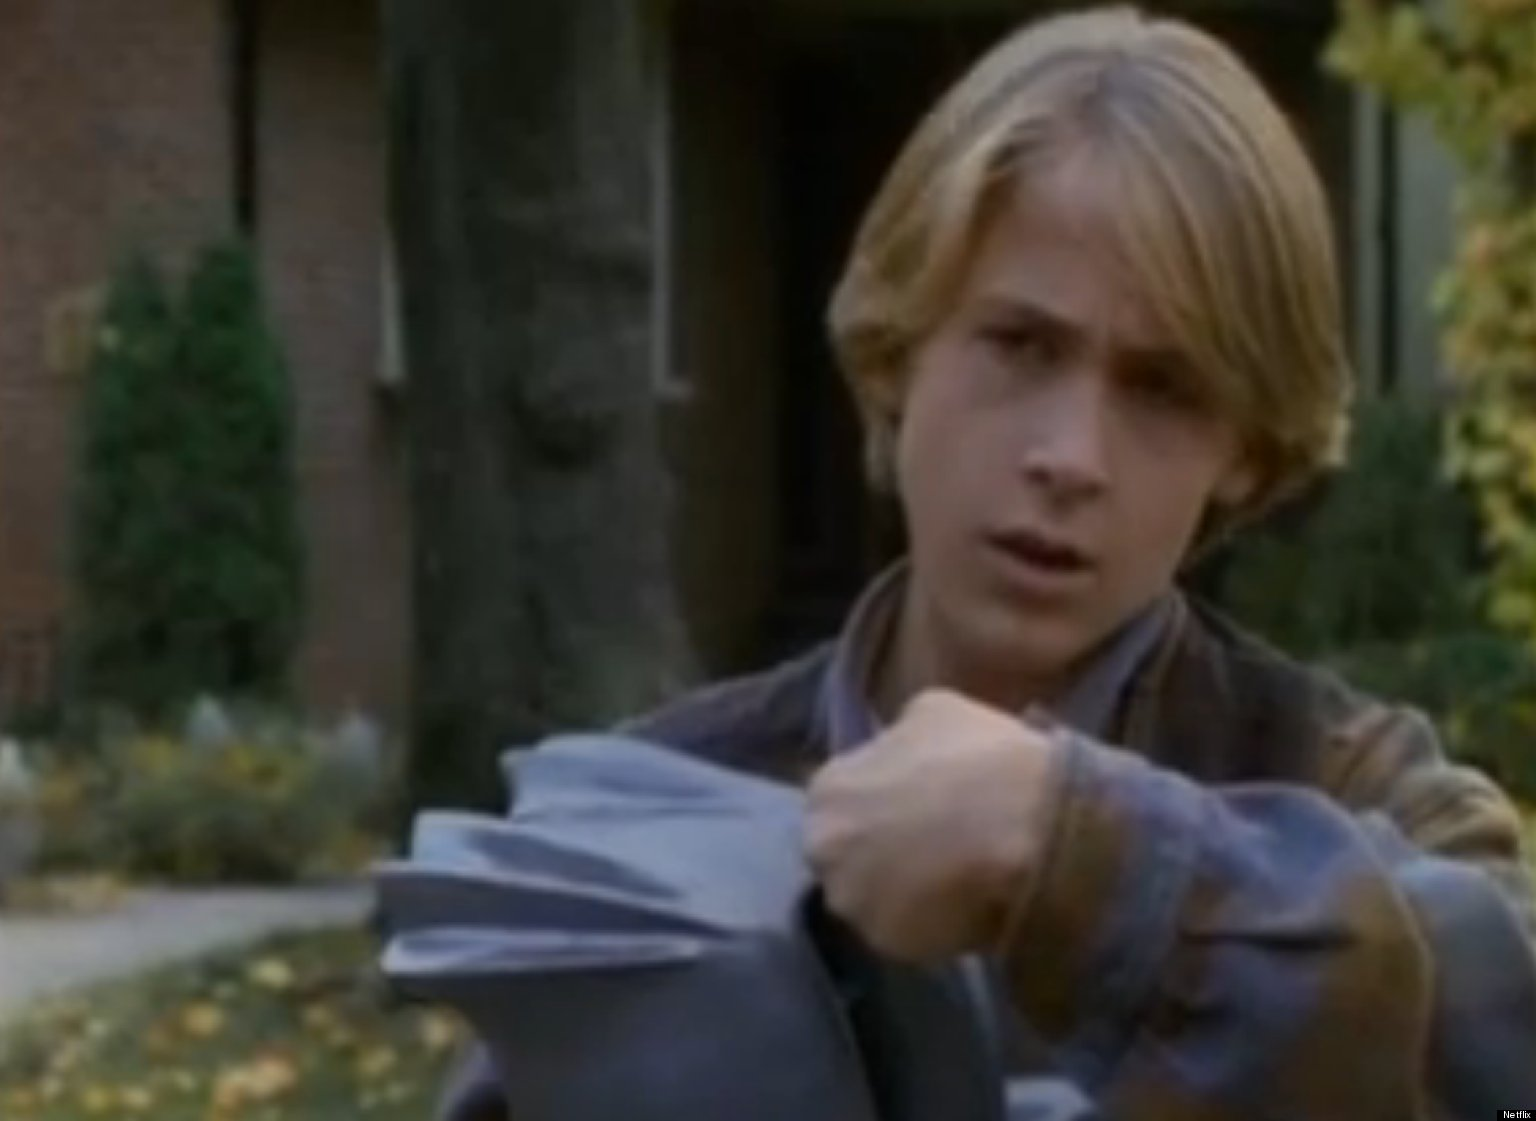 Ryan Gosling In Goosebumps Video Is Adorable As Ever